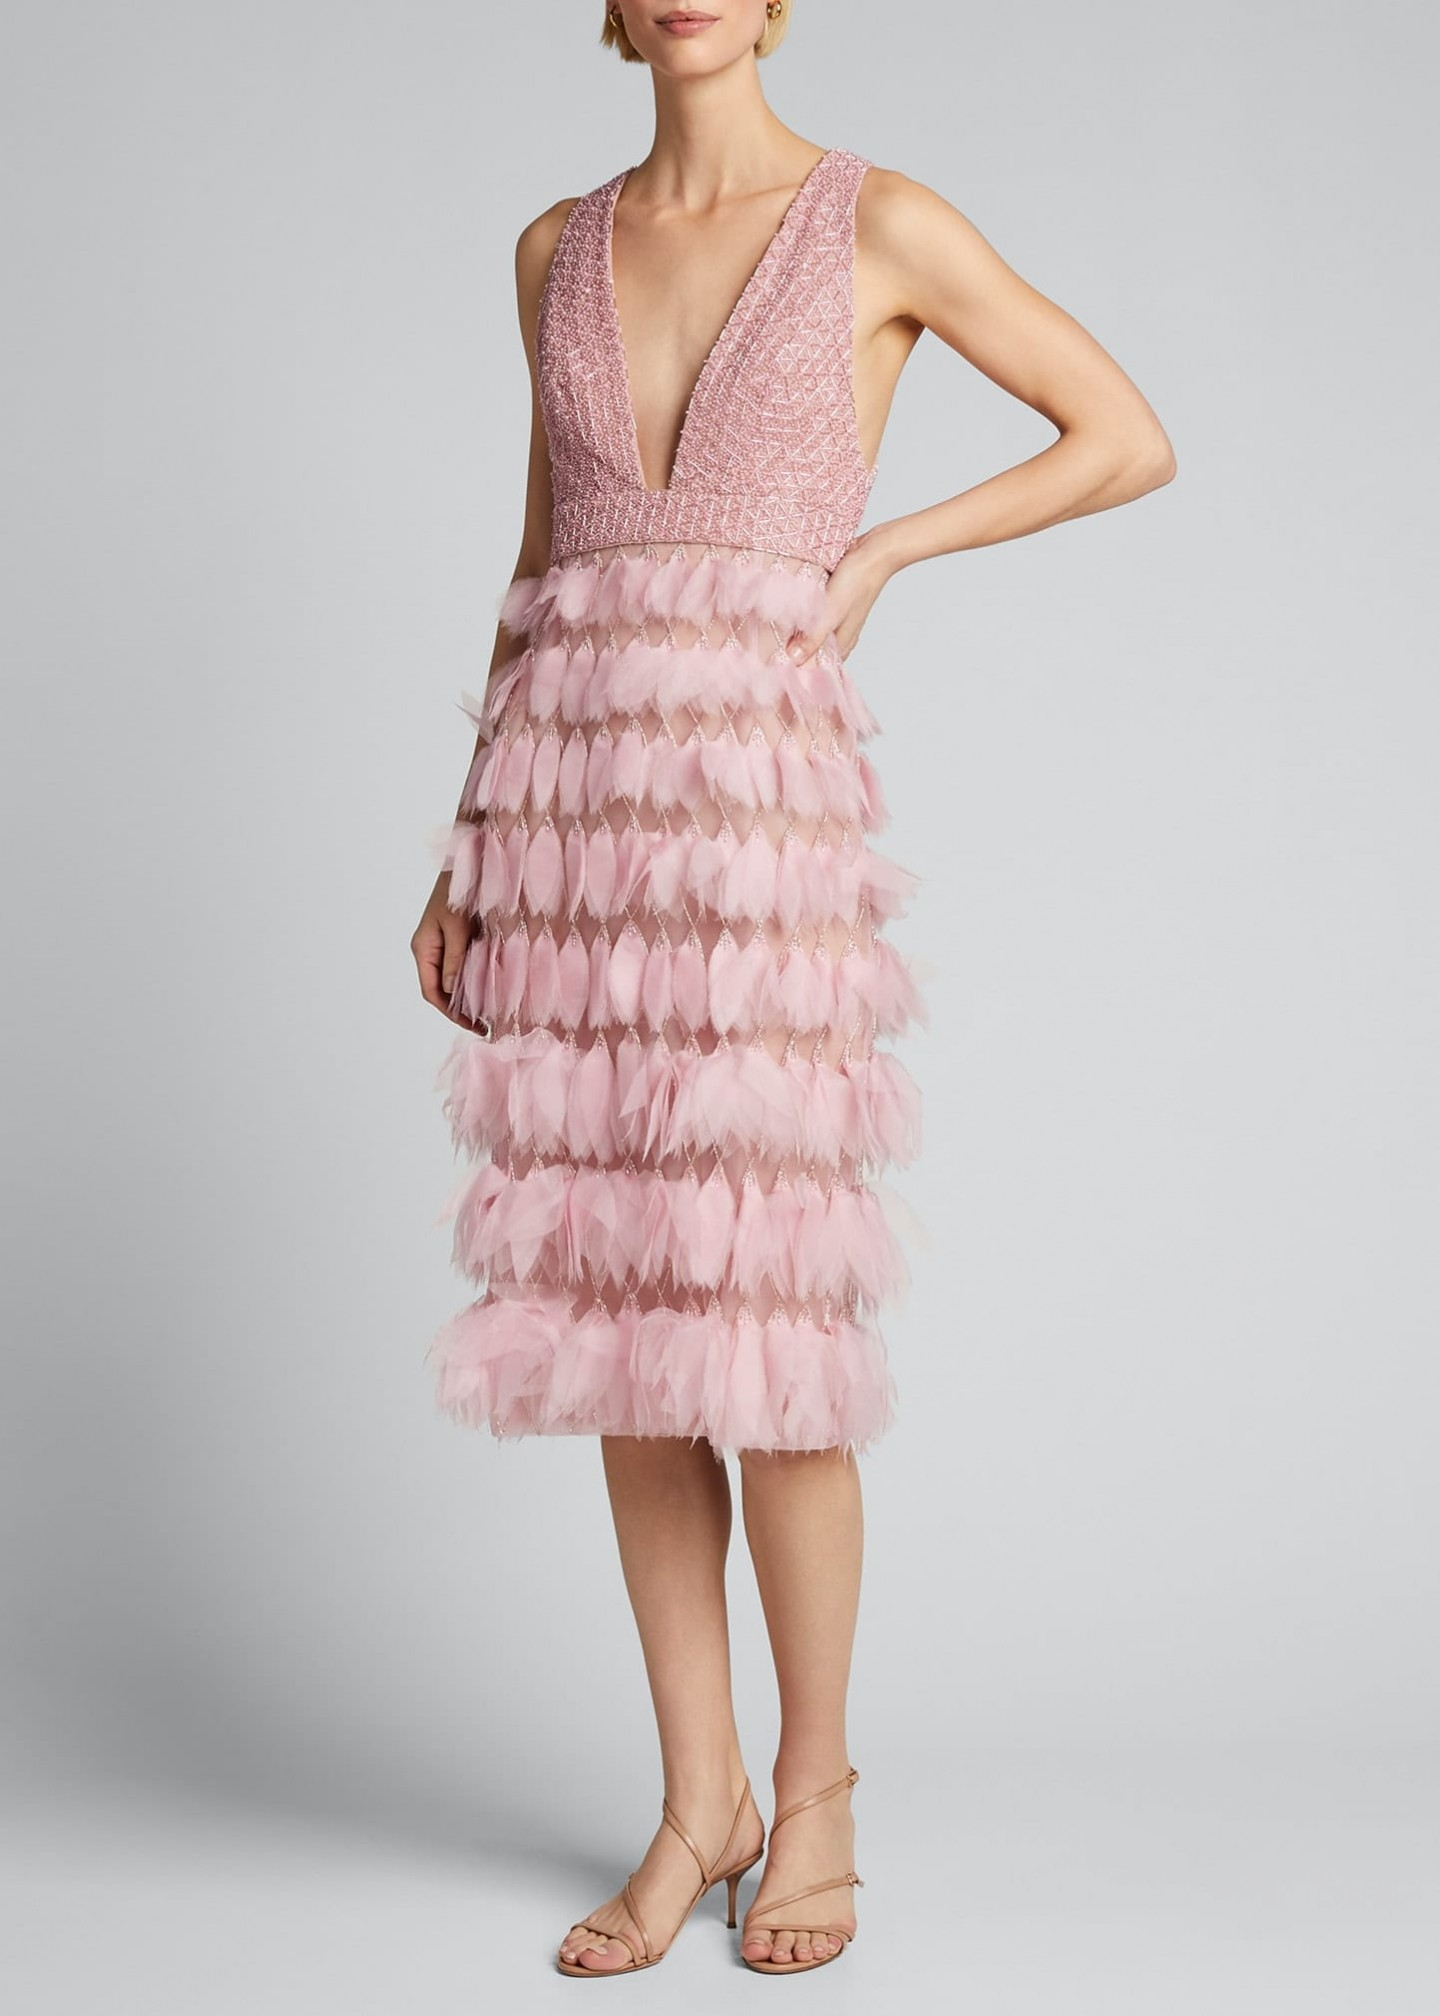 J. MENDEL Organza-Feather Embroidered Sheath Dress